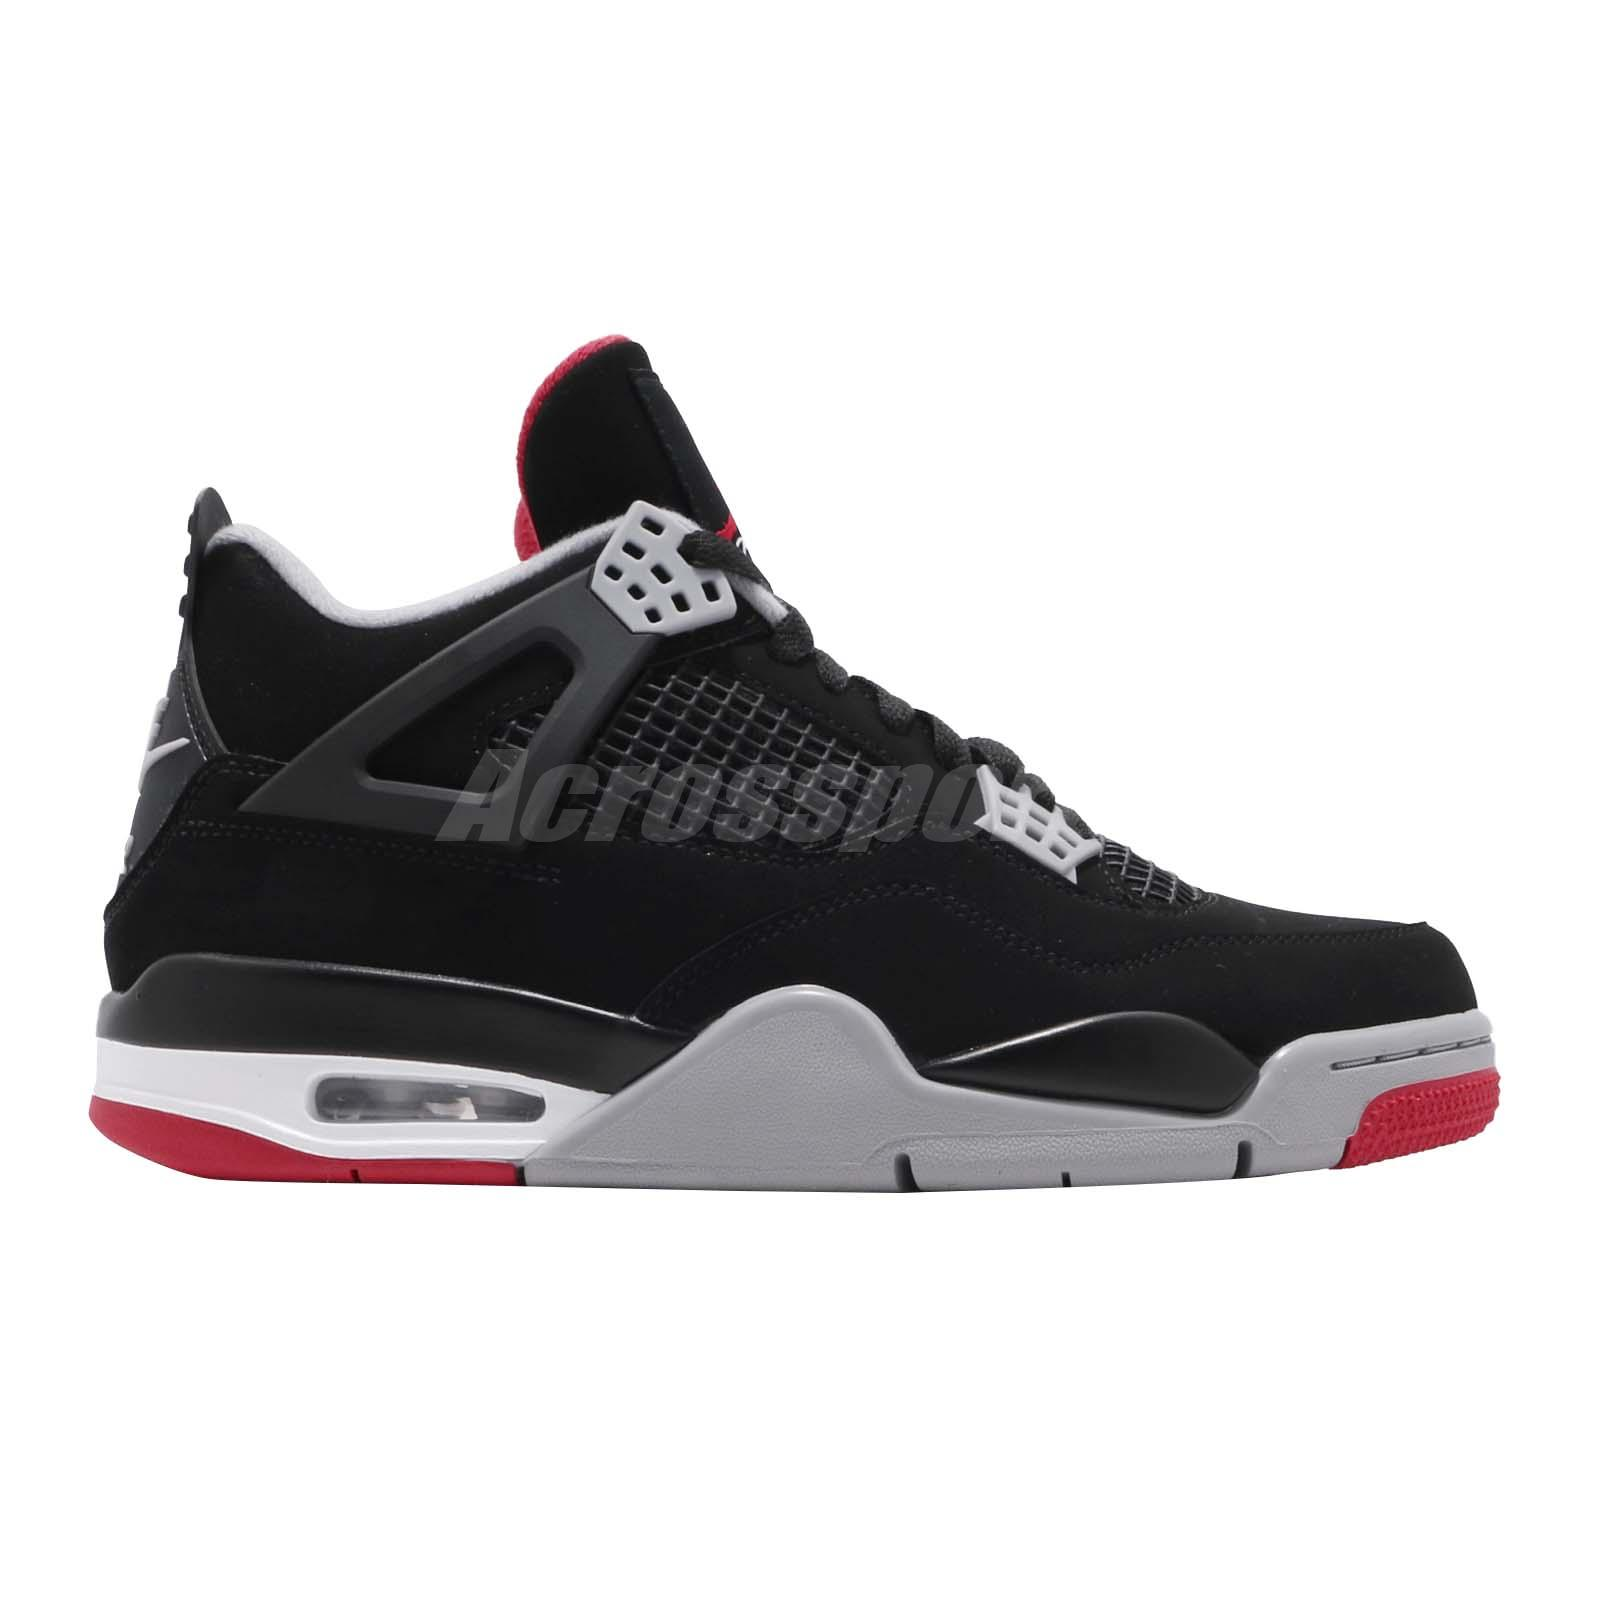 Clothing, Shoes & Accessories Men's Shoes Nike Air Jordan 4 Retro Bred 2019 Iv Aj4 Black Red Men Shoes Sneakers 308497-060